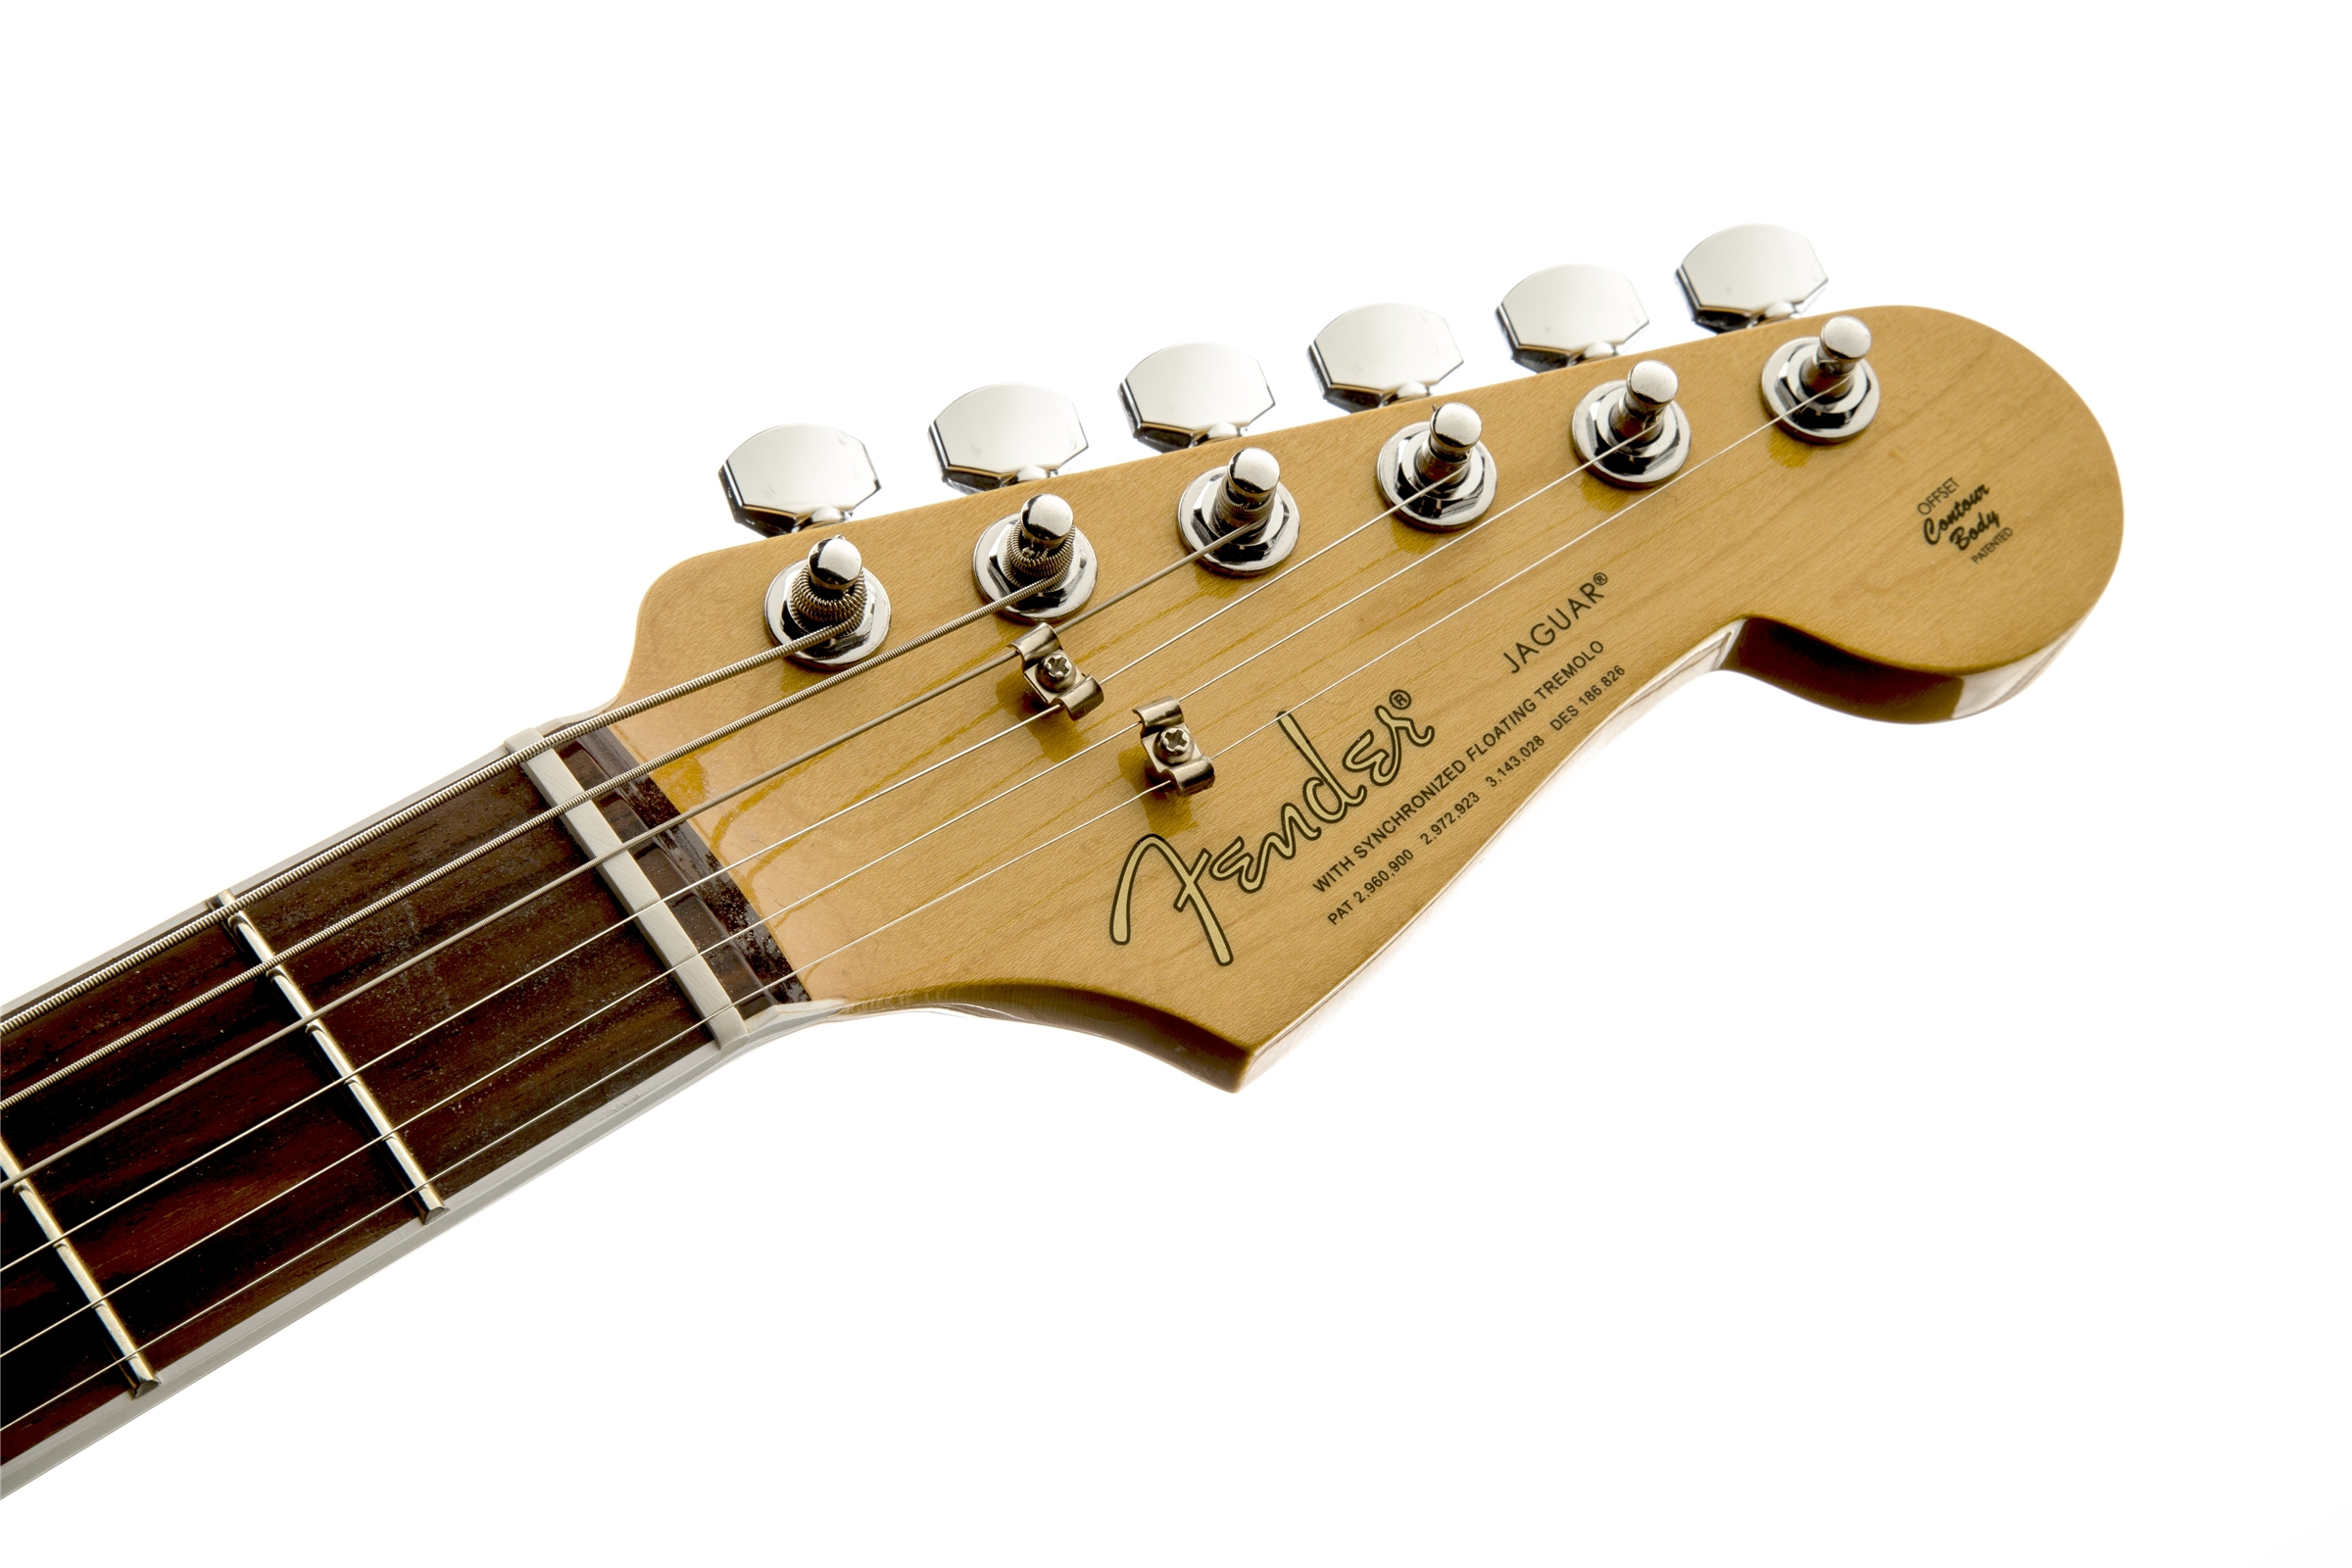 Kurt Cobain Jaguar Electric Guitars Return From Diagram Of A Nylon String Guitar